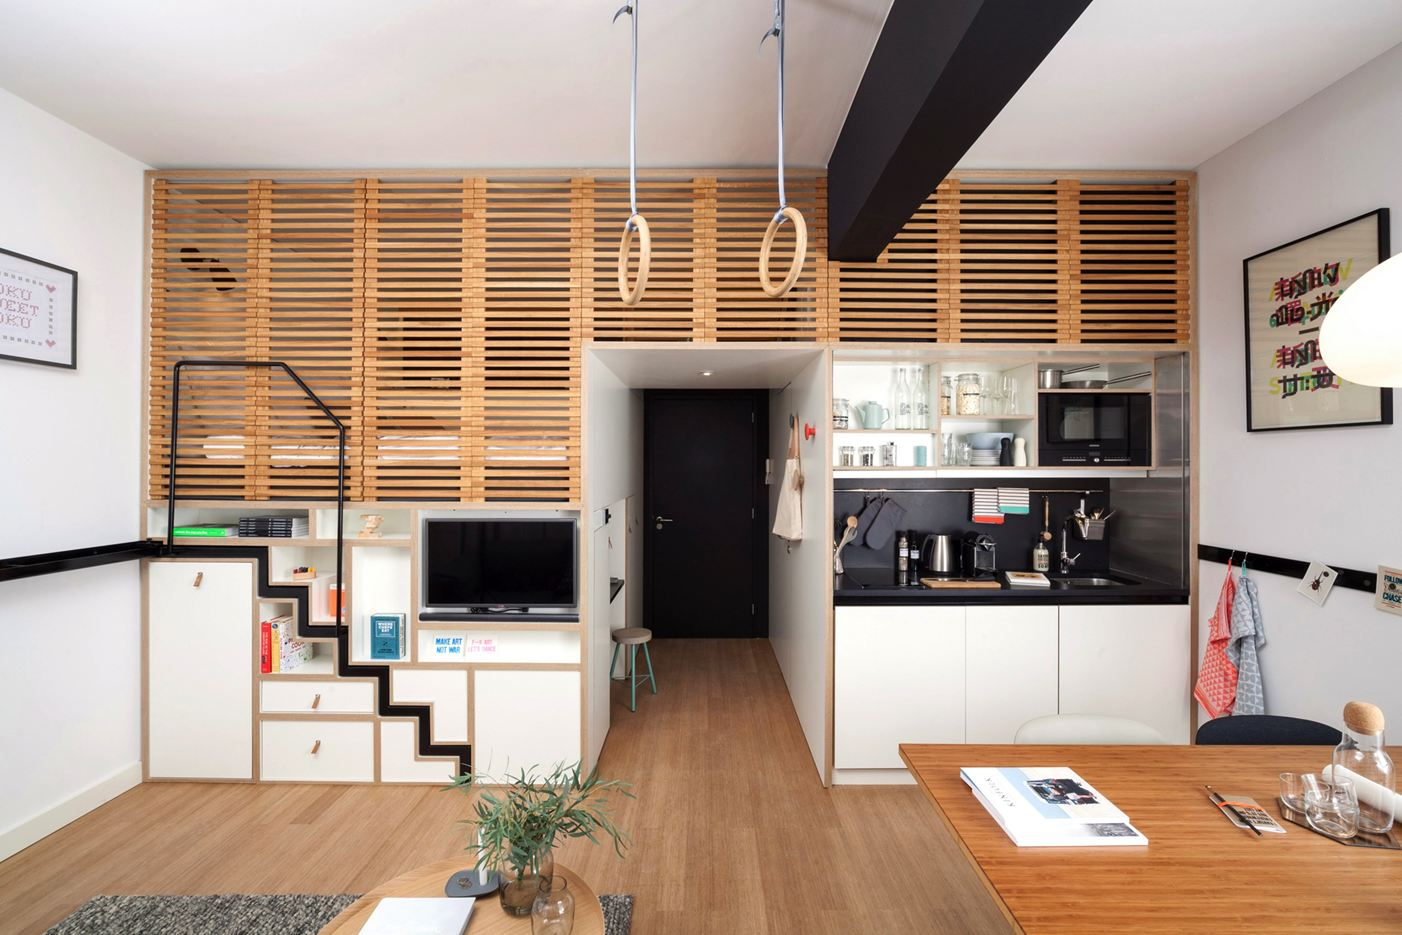 Zoku Loft in Amsterdam, Netherlands by Concrete Architectural Associates